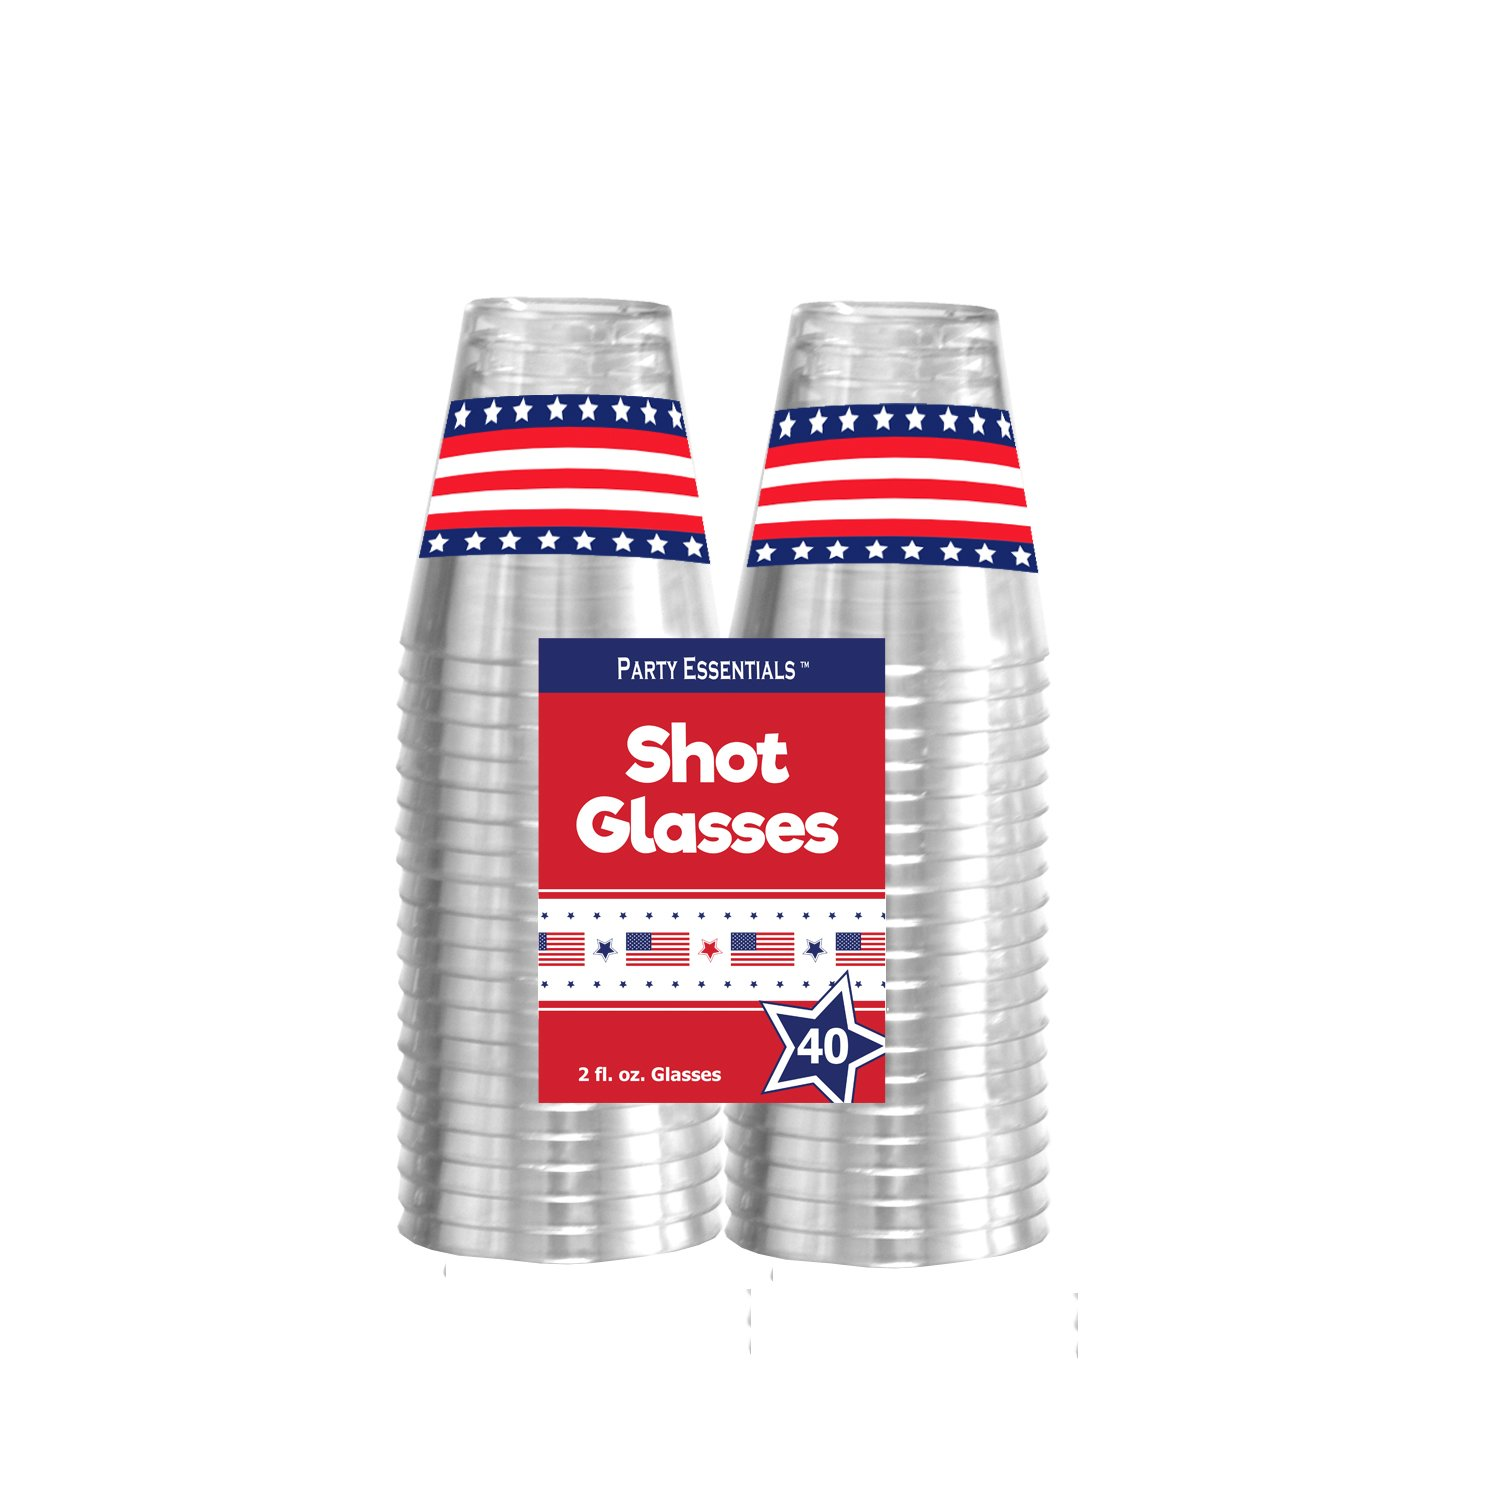 Party Essentials N24050 Hard Plastic Shot Glasses, 2 oz, Flag Print 40 CT. (CASE of 480), 6'' Height, 2'' Width, 4'' Length, Plastic (Pack of 480) by Party Essentials